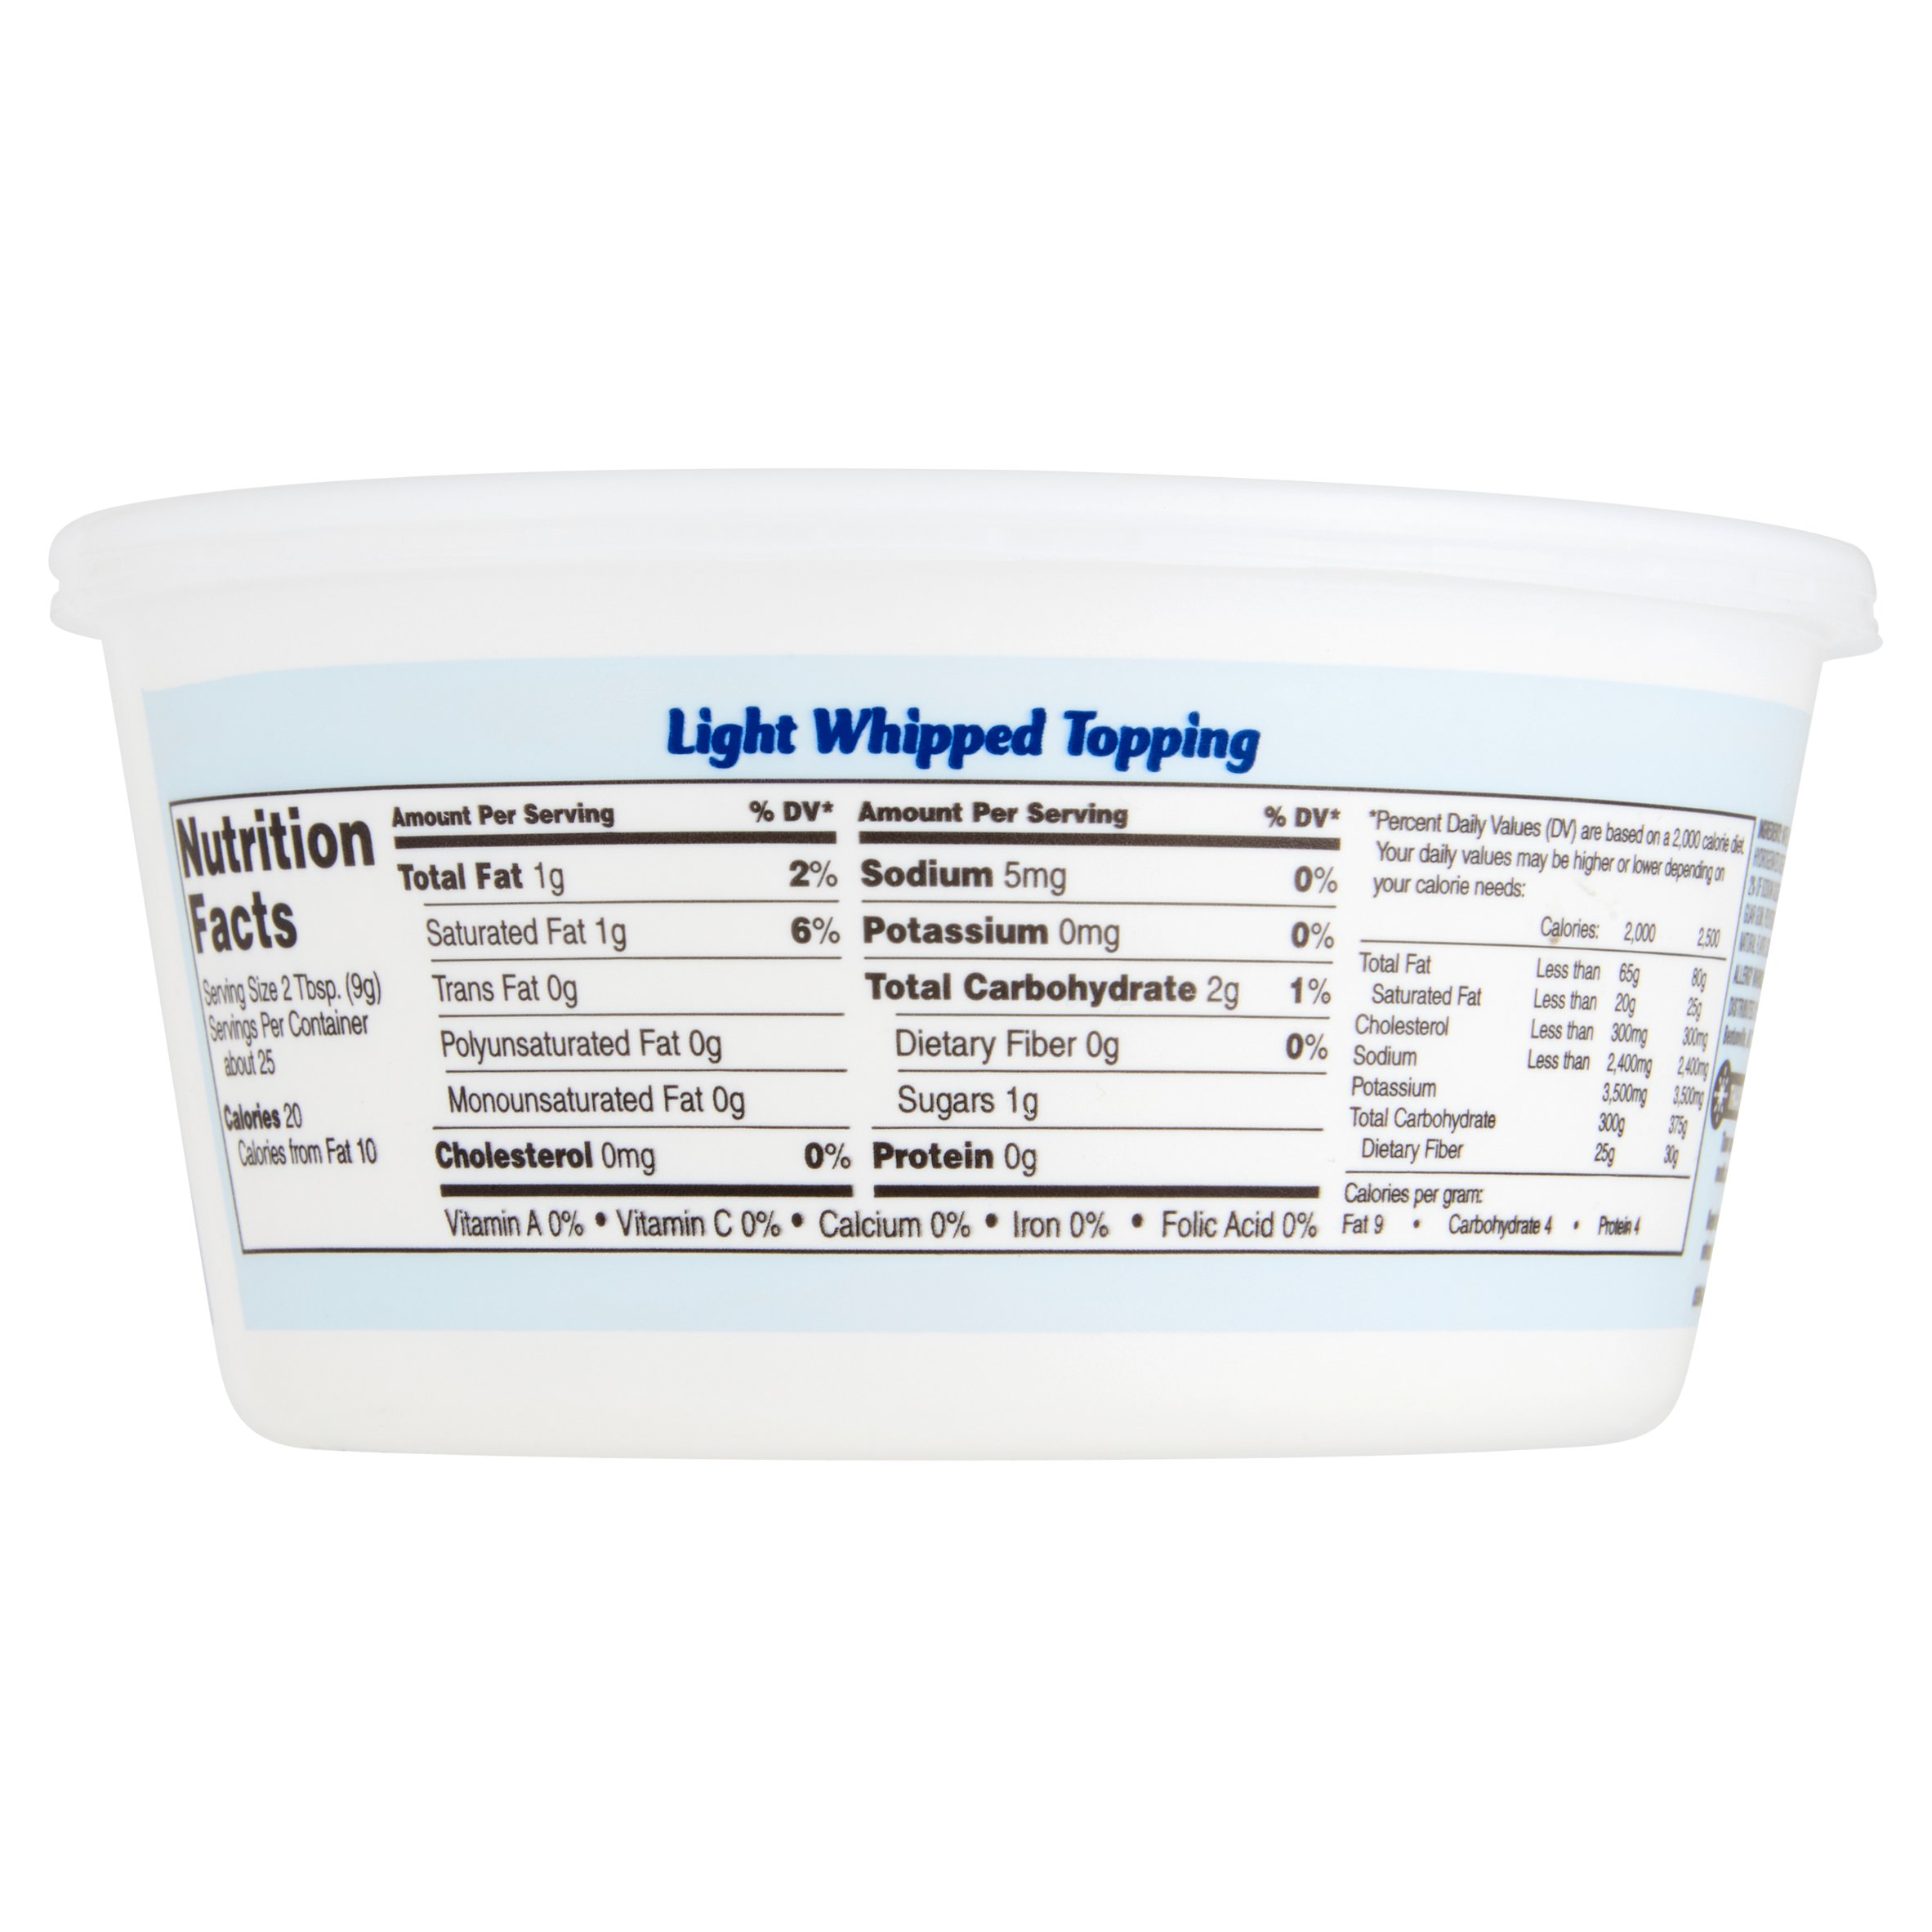 Great Value Light Whipped Topping Whipped Topping With A Light